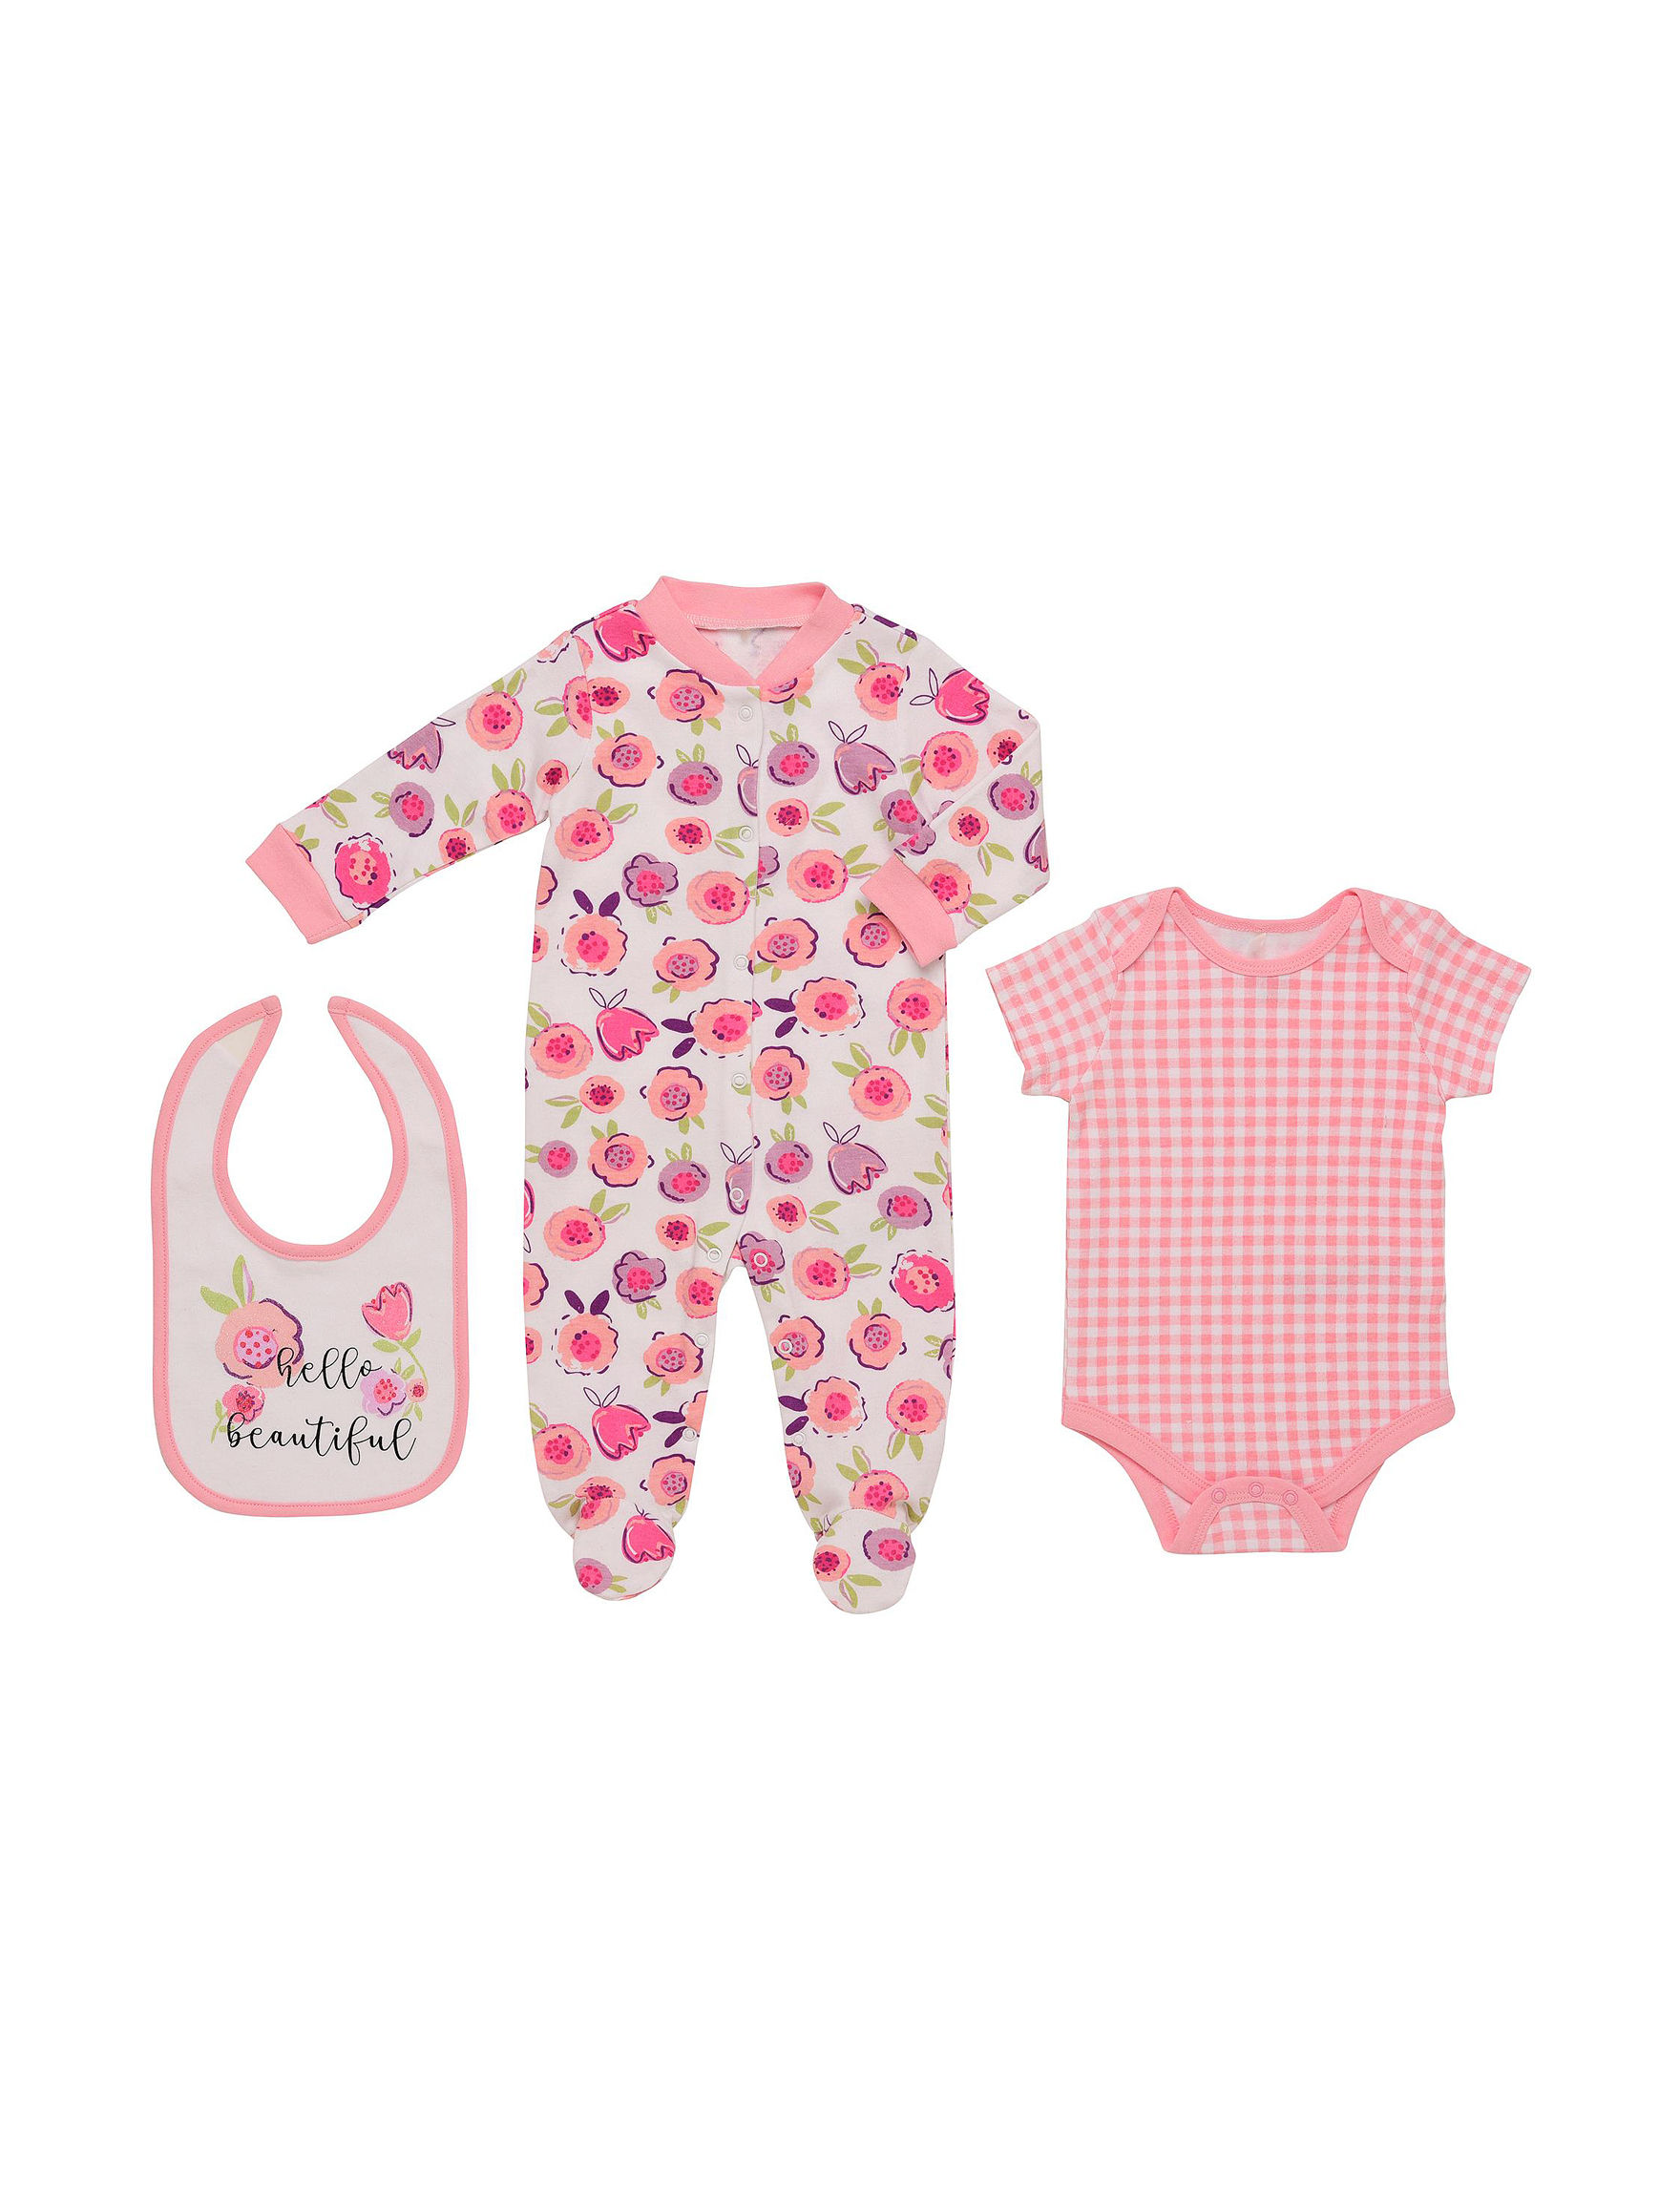 Baby Starters Pink Floral